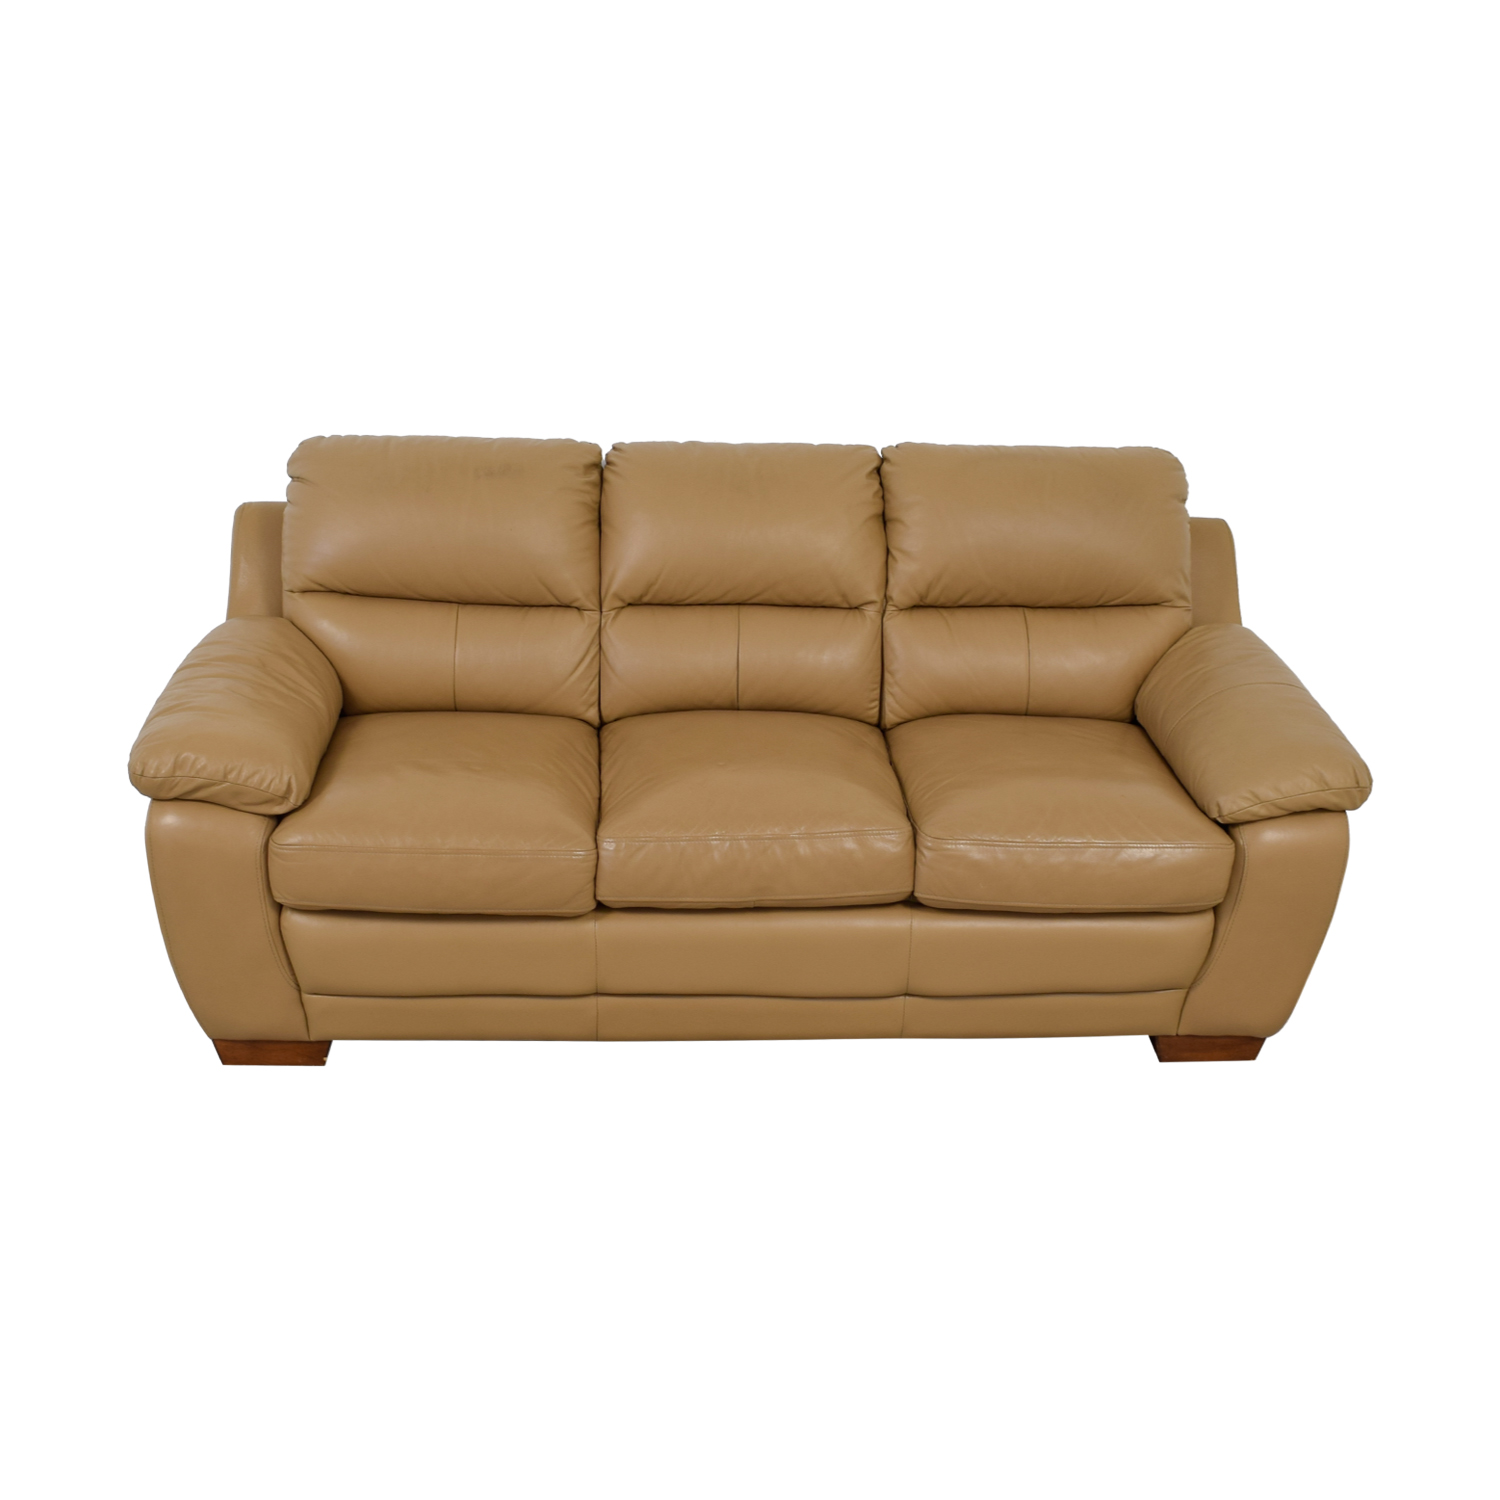 Sale Leather Loveseat Sofa And